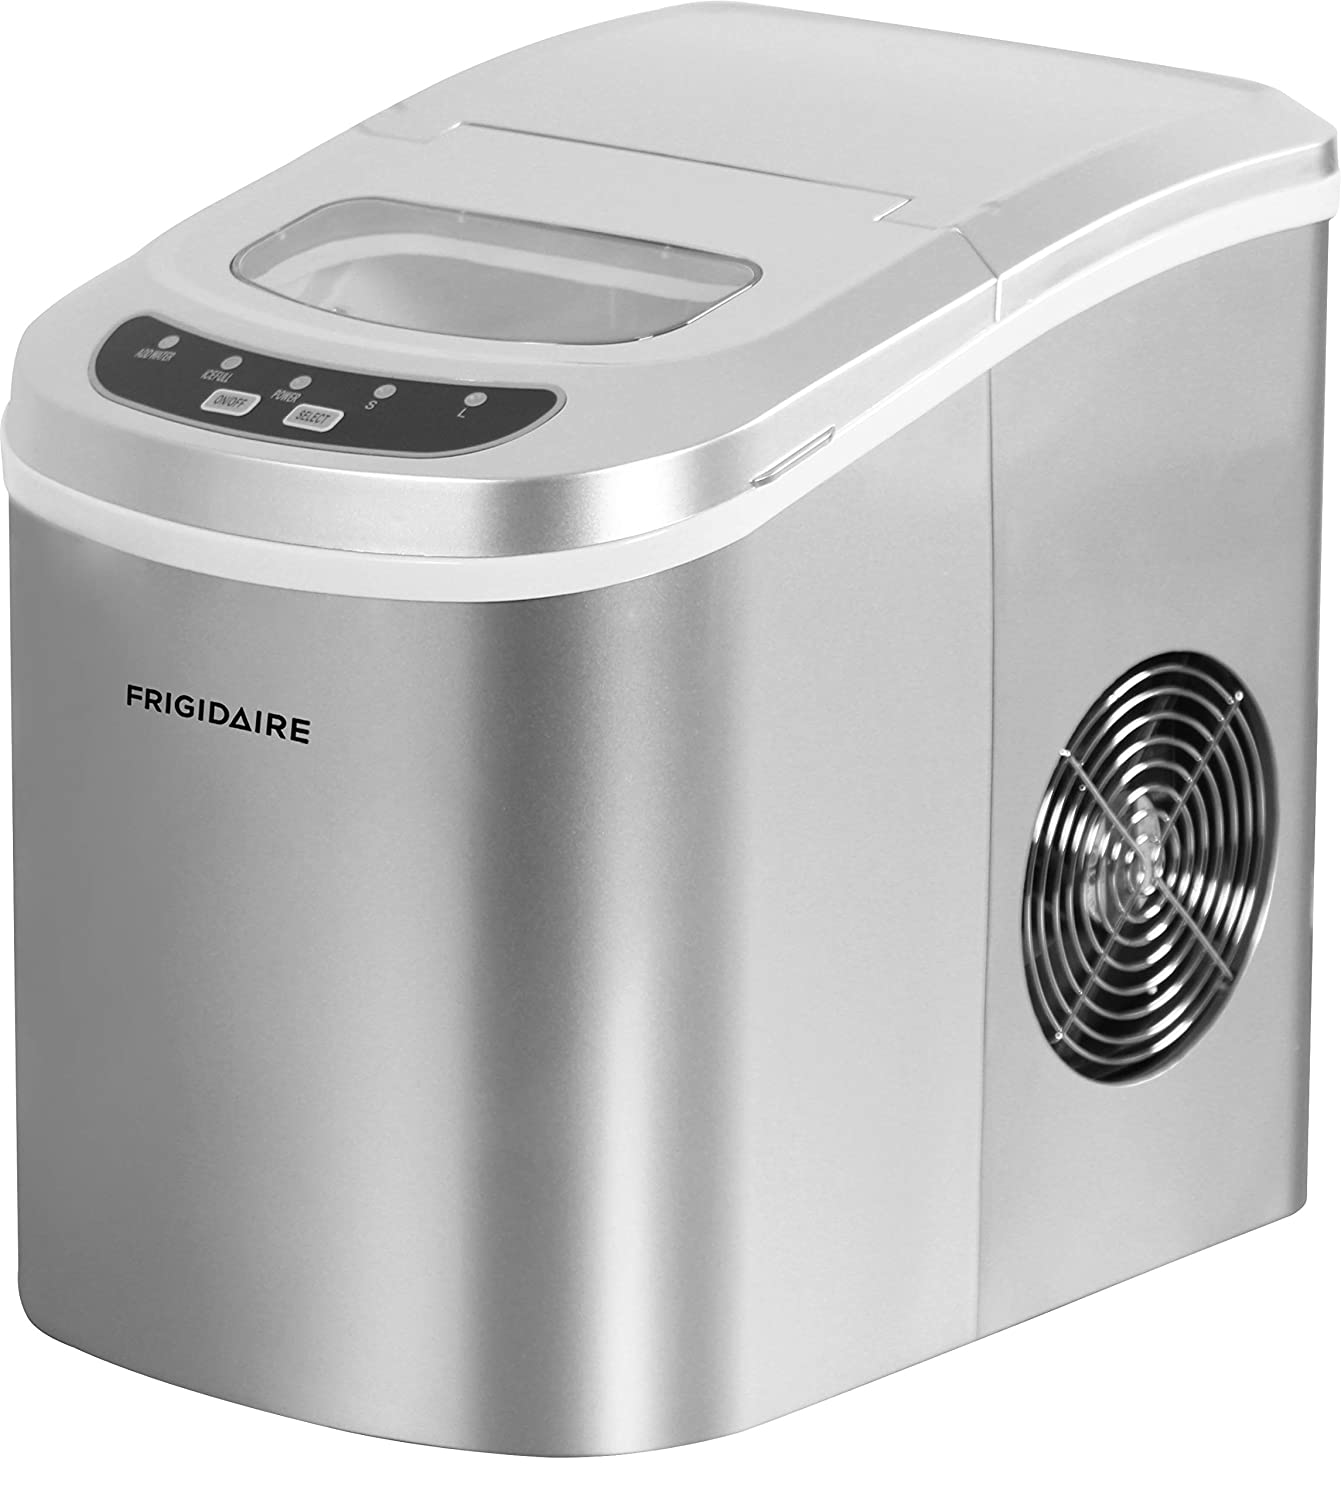 Frigidaire EFIC102 Counter Top Ice Maker, Silver, 26lb per day